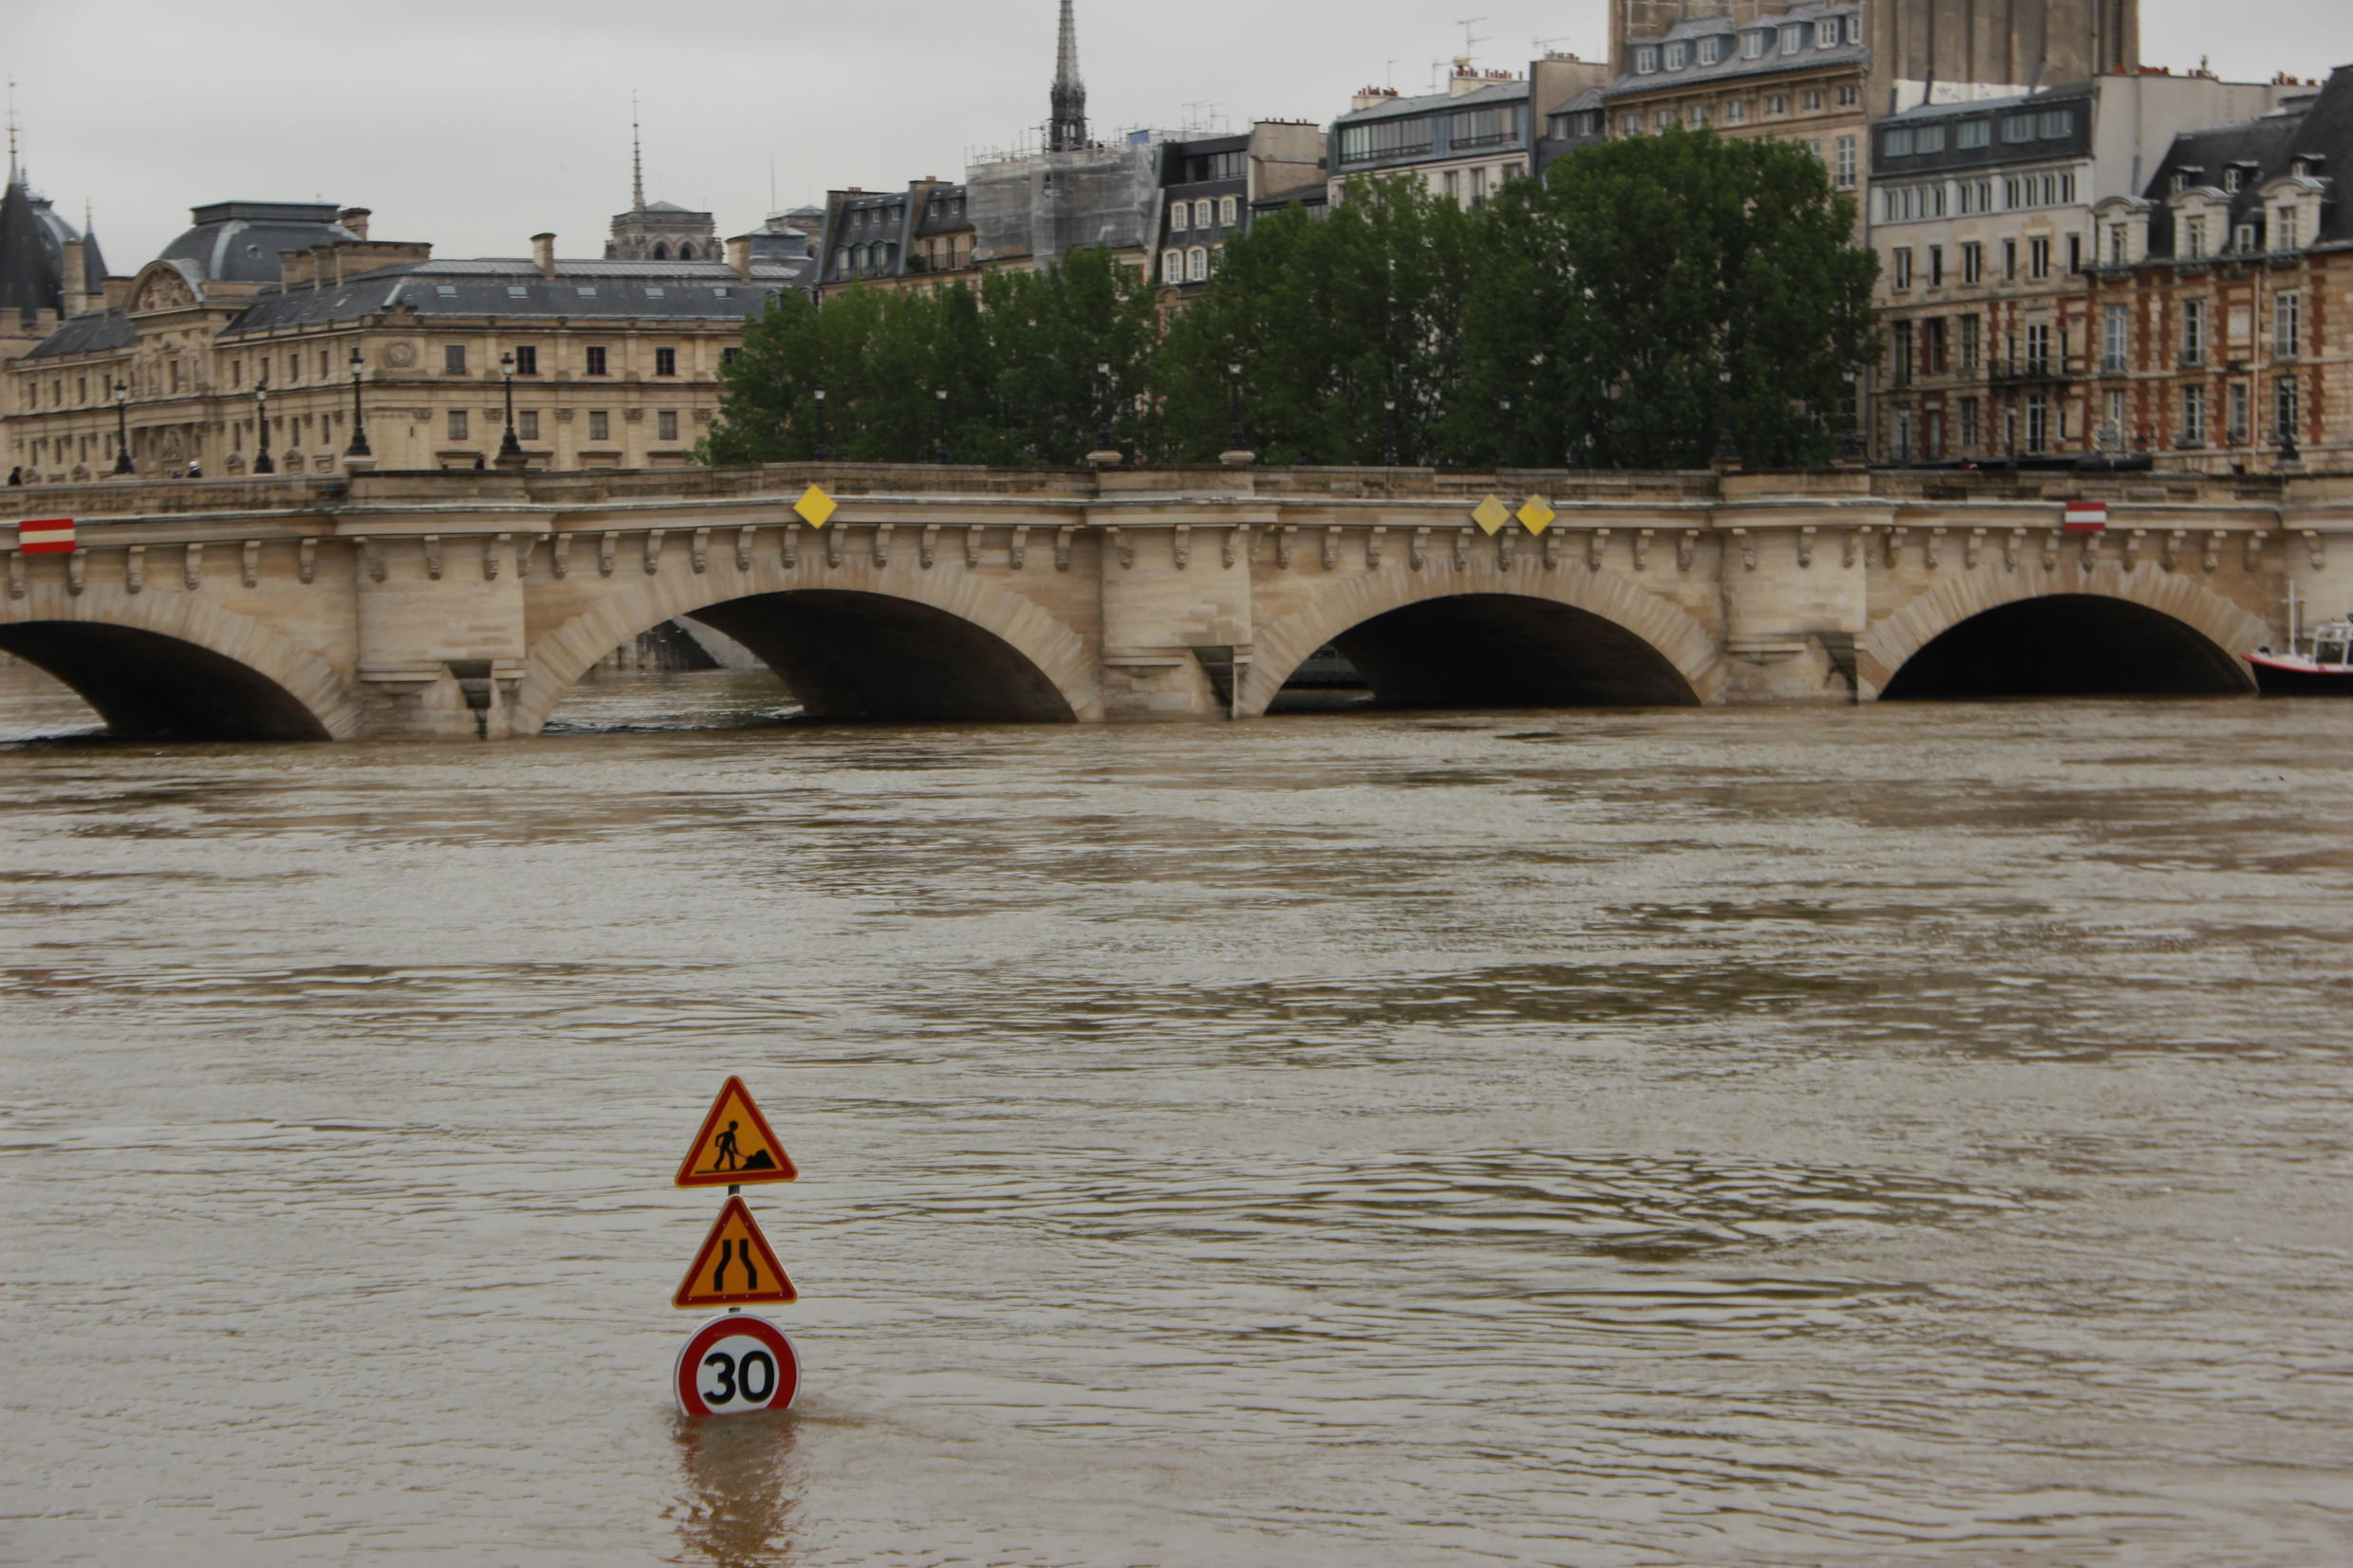 The River Seine, which cuts across the French capital, surpassed the critical 6m above-base-level mark on Friday afternoon, and was still rising.